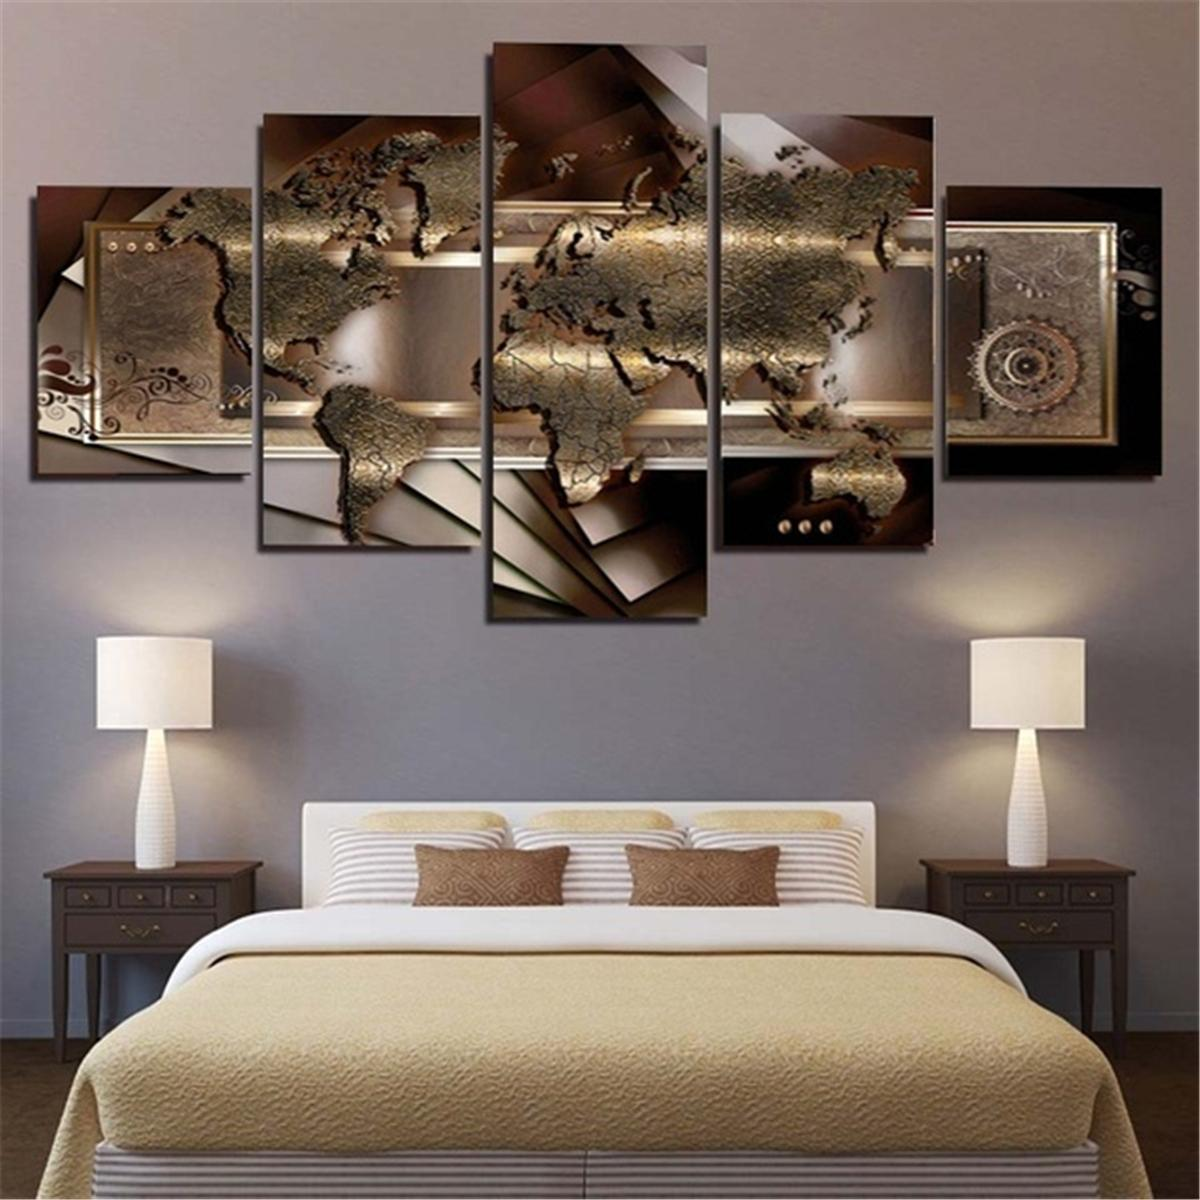 5 Panels Modern Map Wall Art Picture Home Wall Art Canvas Painting Living Room Bedroom Wall Decor: Buy Online at Best Prices in Pakistan | Daraz.pk